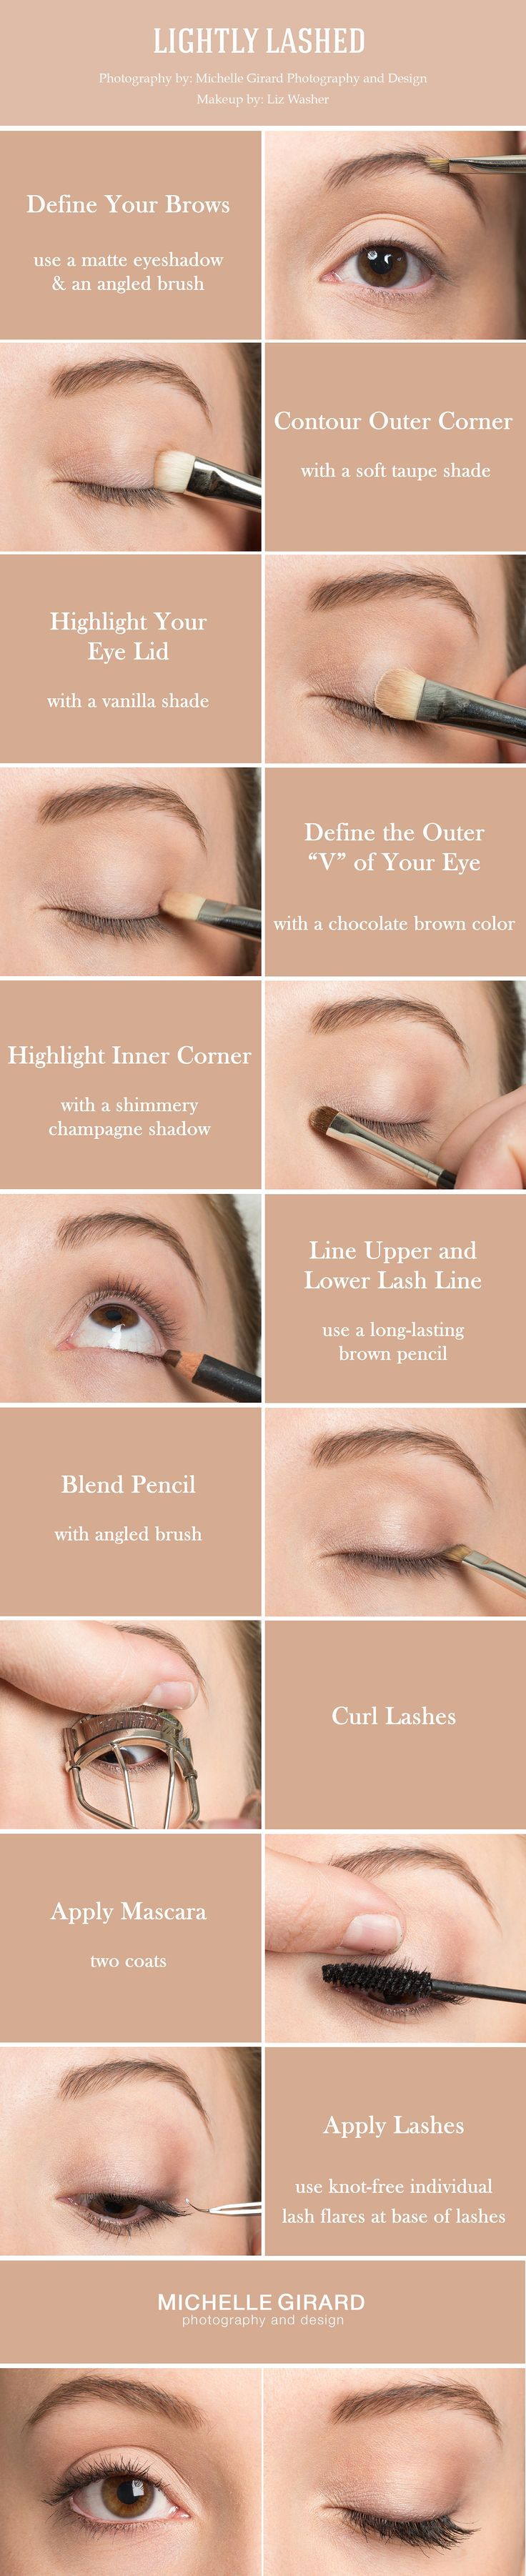 I'm really excited to share a recent collaboration with Liz Washer on demonstrating how to get some of the current on trend makeup looks. To add to my excitement, these tutorials were just published in Style Me Pretty! I'm going to space out the three looks here on my blog, so as not to over